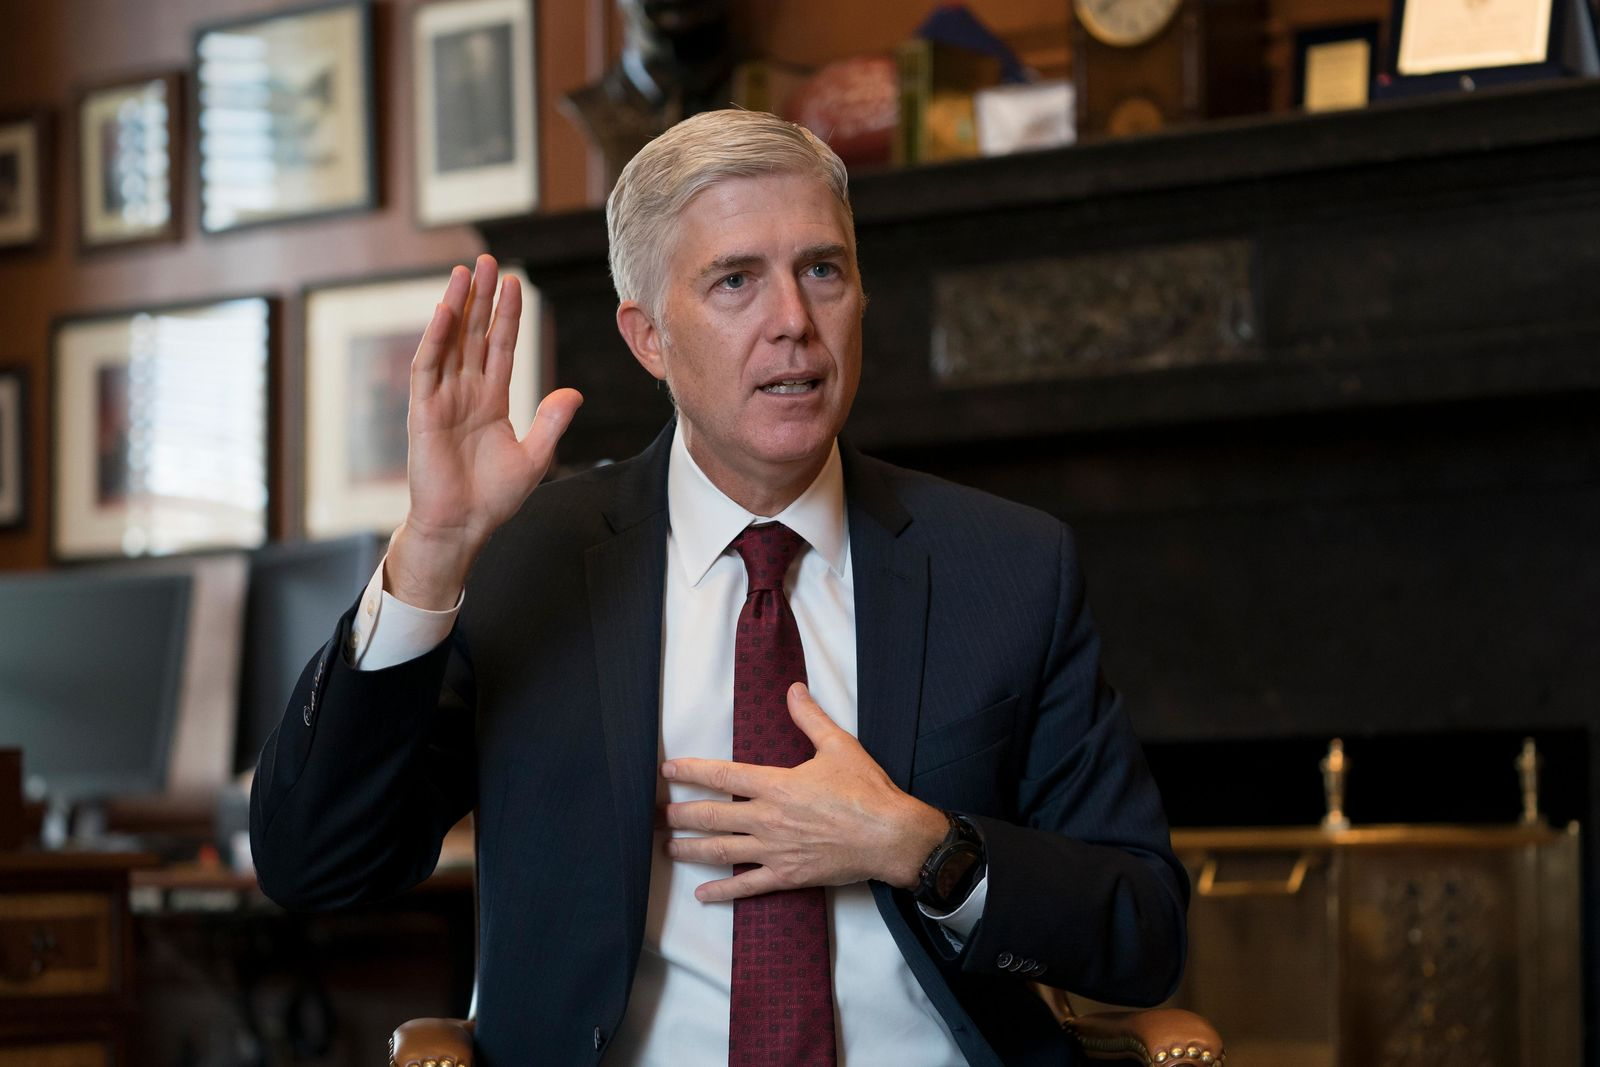 Associate Justice Neil Gorsuch, President Donald Trump's first appointee to the high court, speaks to The Associated Press about events that have influenced his life and the loss of civility in public discourse, in his chambers at the Supreme Court in Washington, Wednesday, Sept. 4, 2019. (AP Photo/J. Scott Applewhite)